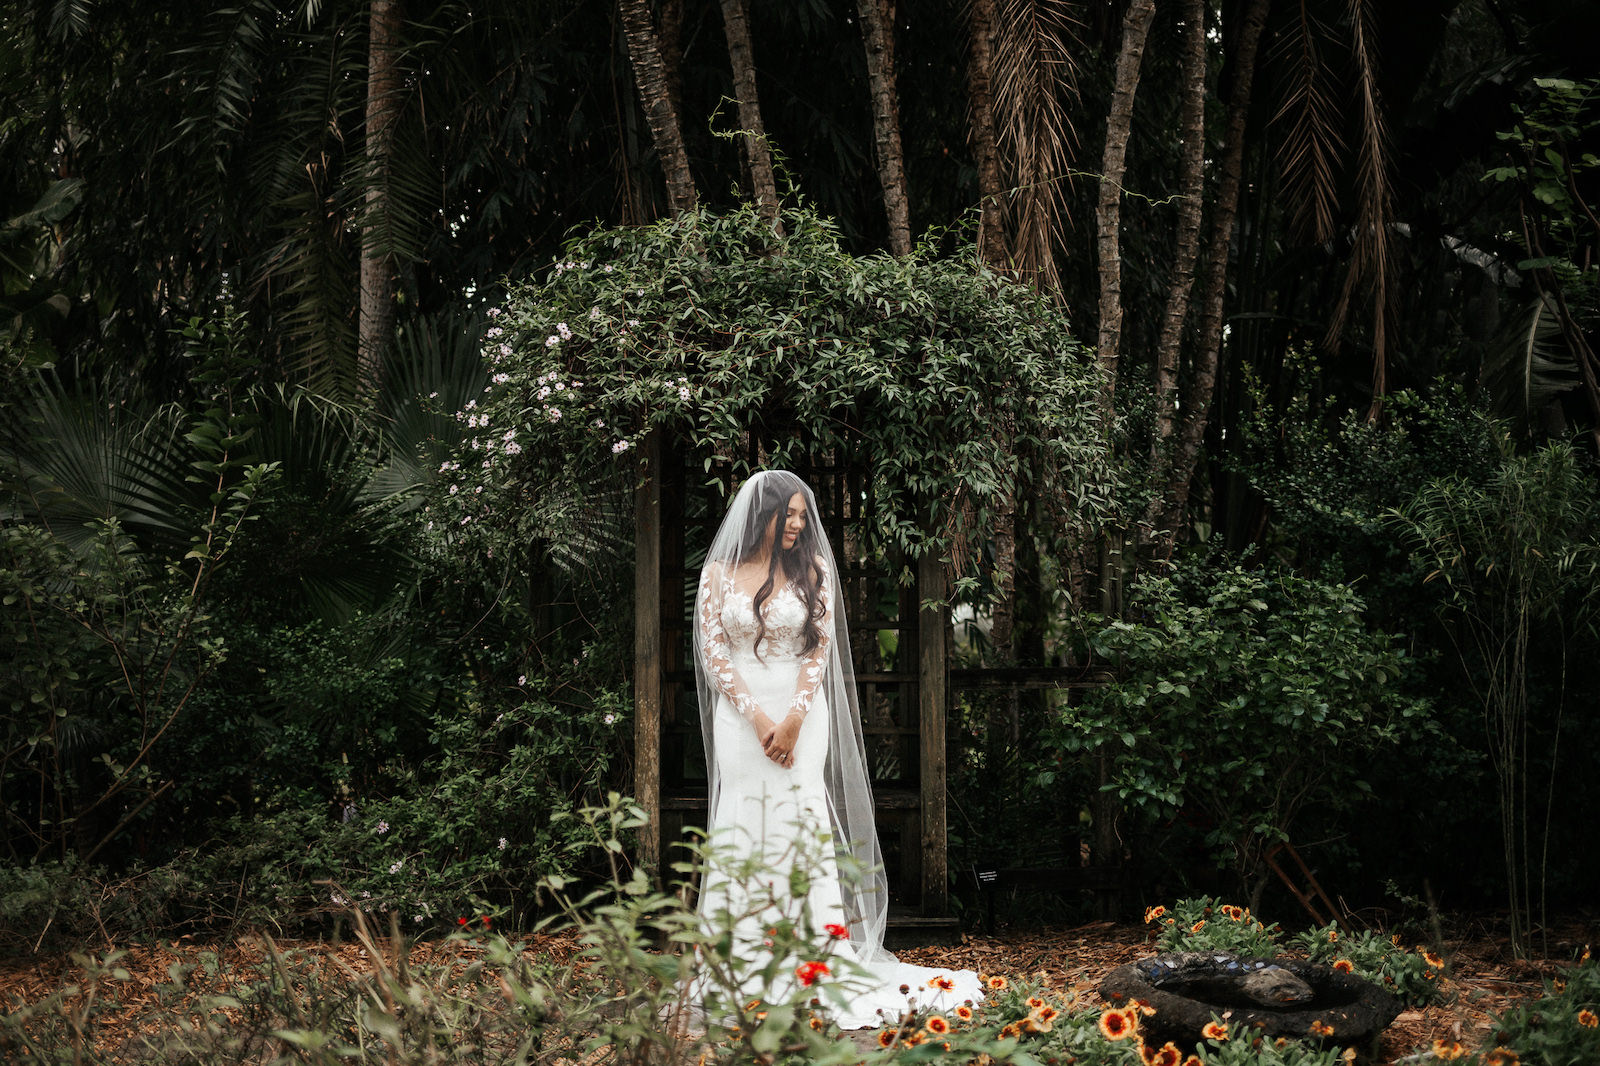 Tropical Elegant Inspired Florida Bride at Sunken Gardens in St. Petersburg, Bride Wearing BHLDN Wedding Dress with Long Illusion Lace Sleeves with Veils | Tampa Bay Wedding Planner John Campbell Weddings